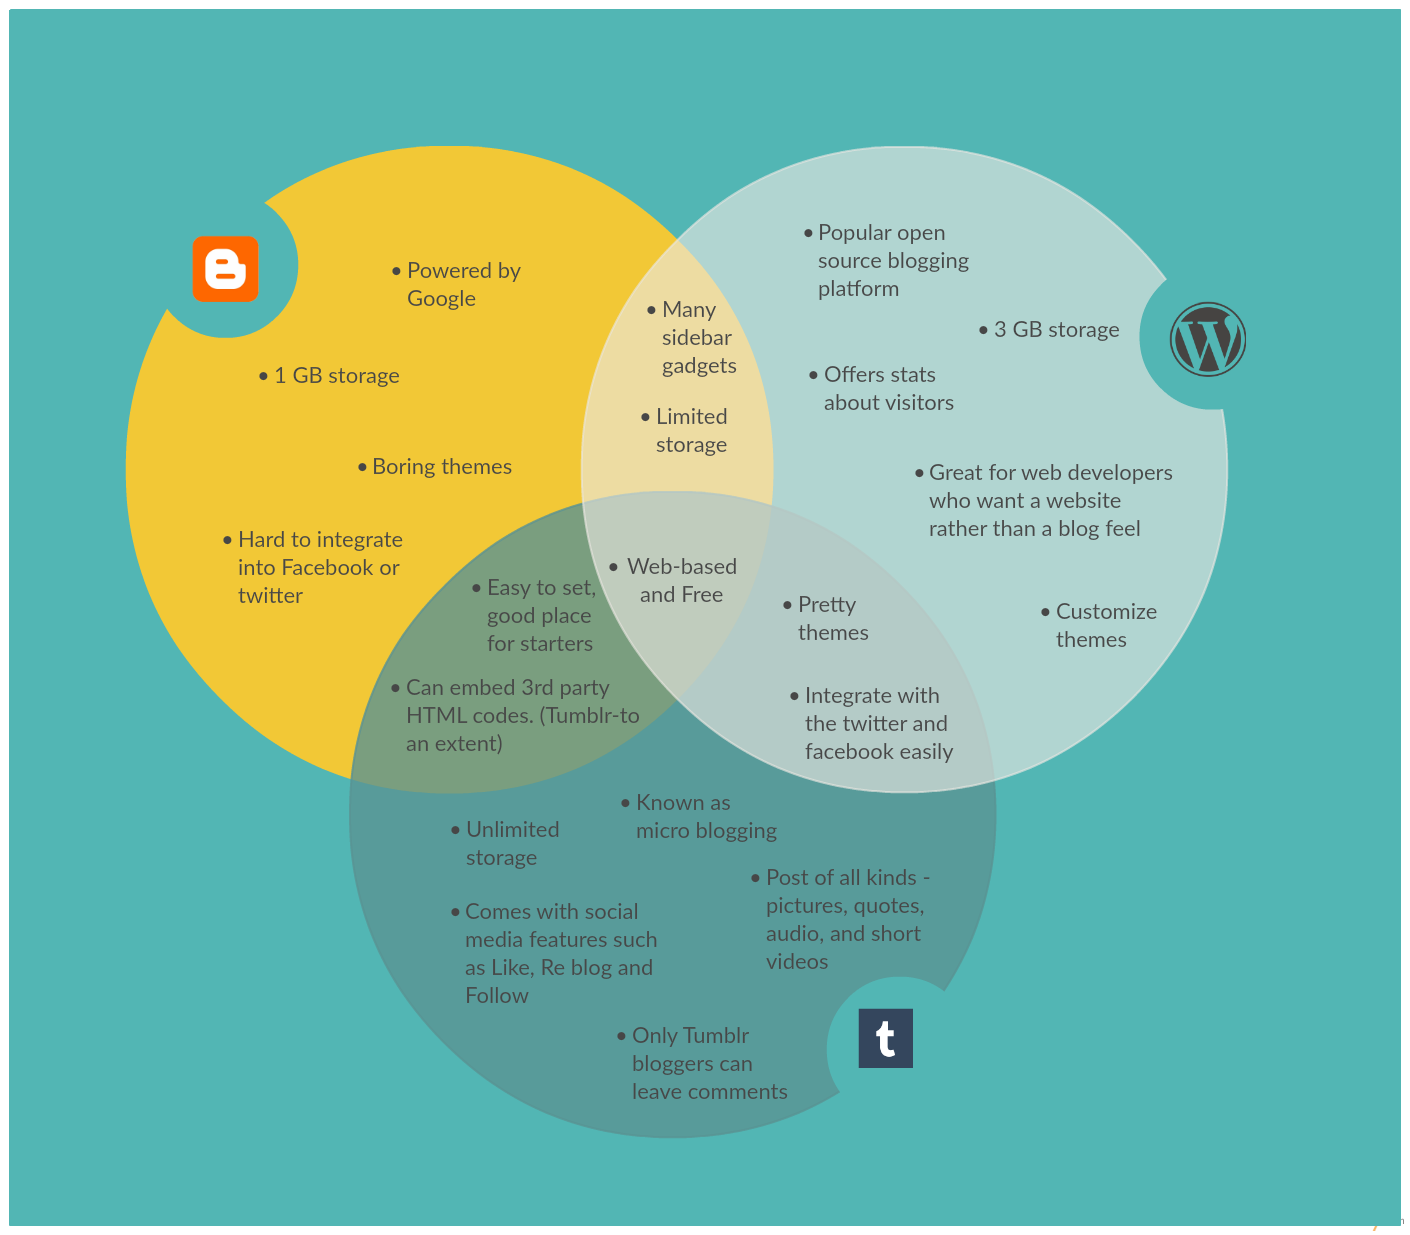 Venn diagram templates editable online or download for free venn diagram template on the different blogging platforms pooptronica Gallery